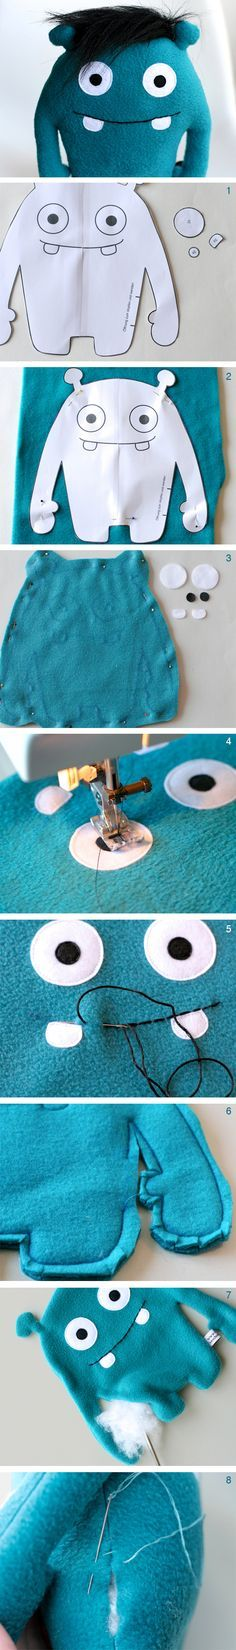 DIY Nähanleitung: Kleines Snuufie Monster nähen // diy sewing tutorial: how to sew a little plush toy monster via DaWanda.com